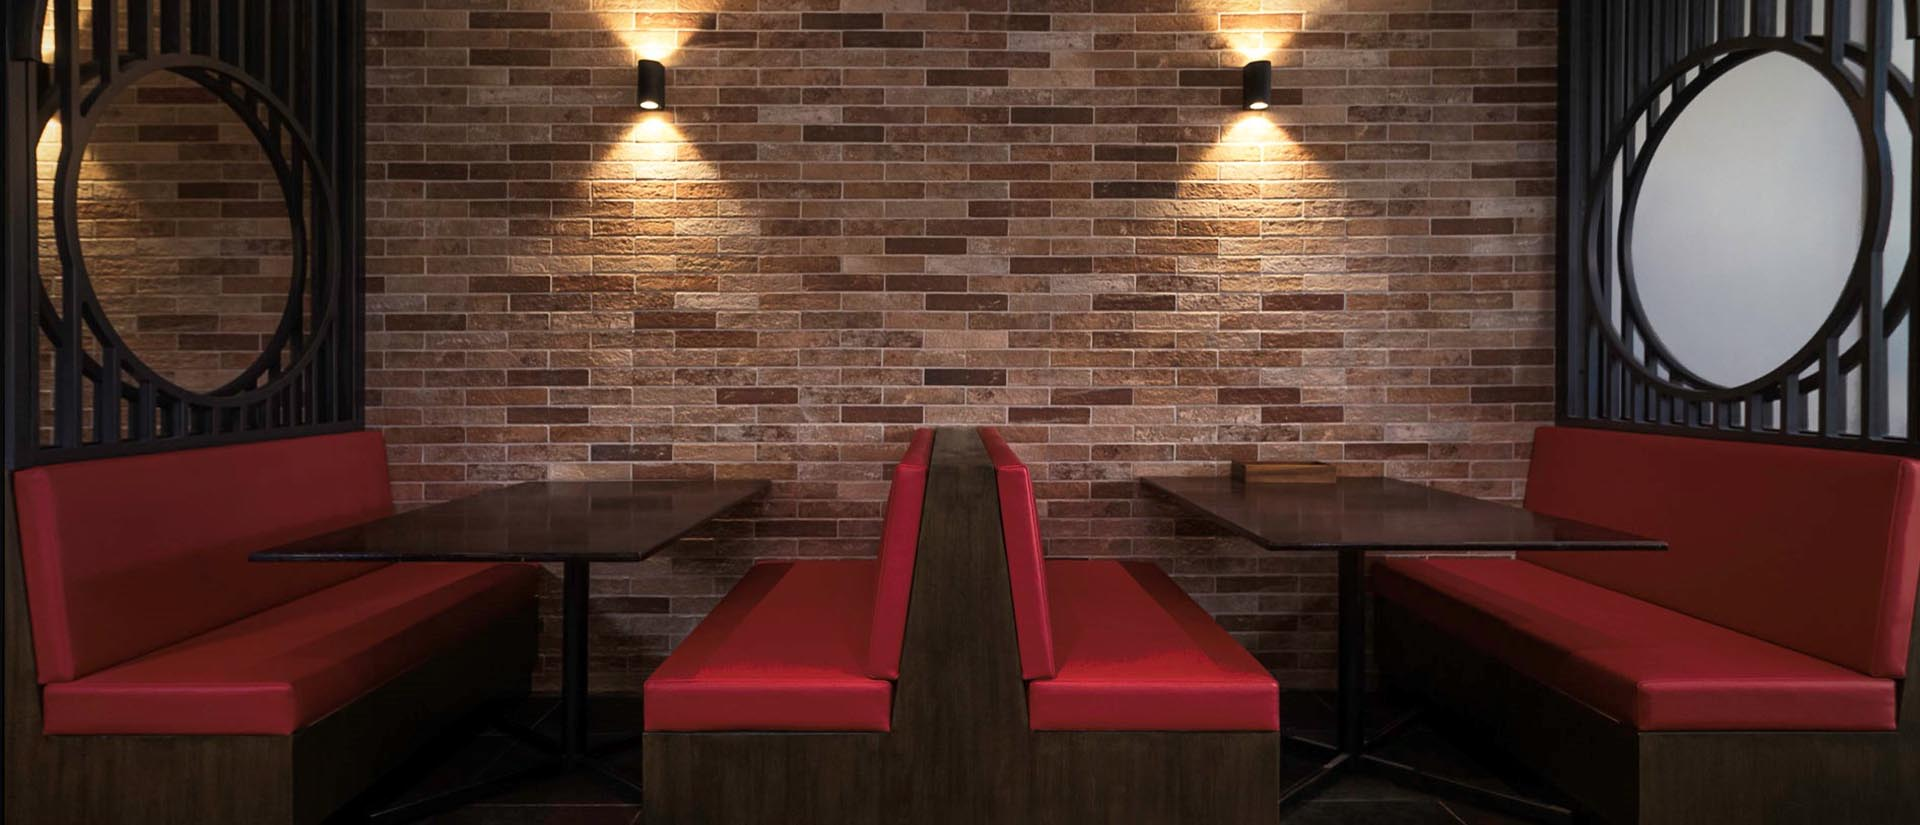 Projects-Restaurant_East Alley-2